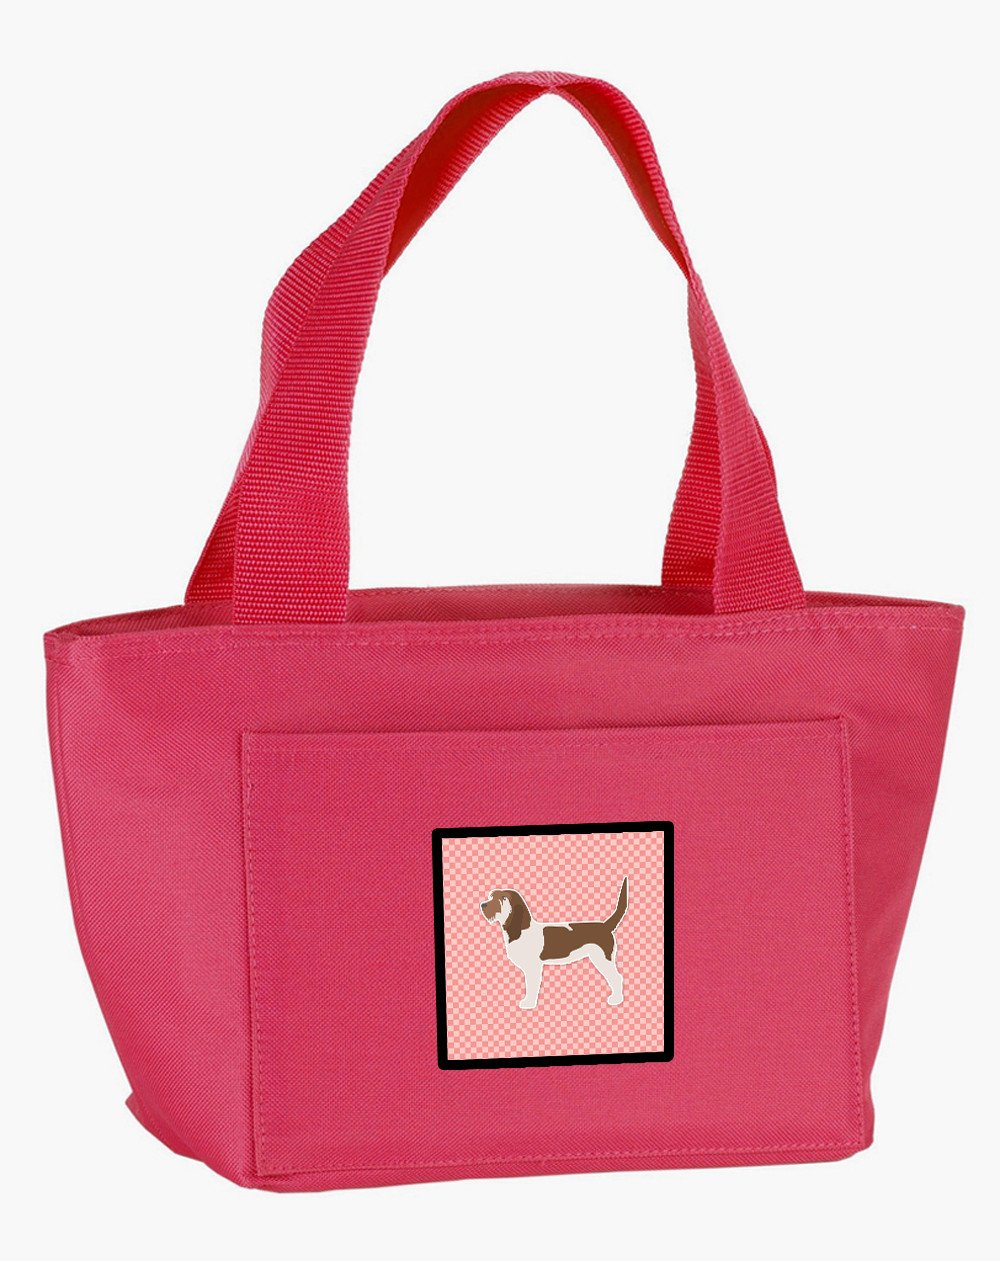 Grand Basset Griffon Vendeen Checkerboard Pink Lunch Bag BB3590PK-8808 by Caroline's Treasures